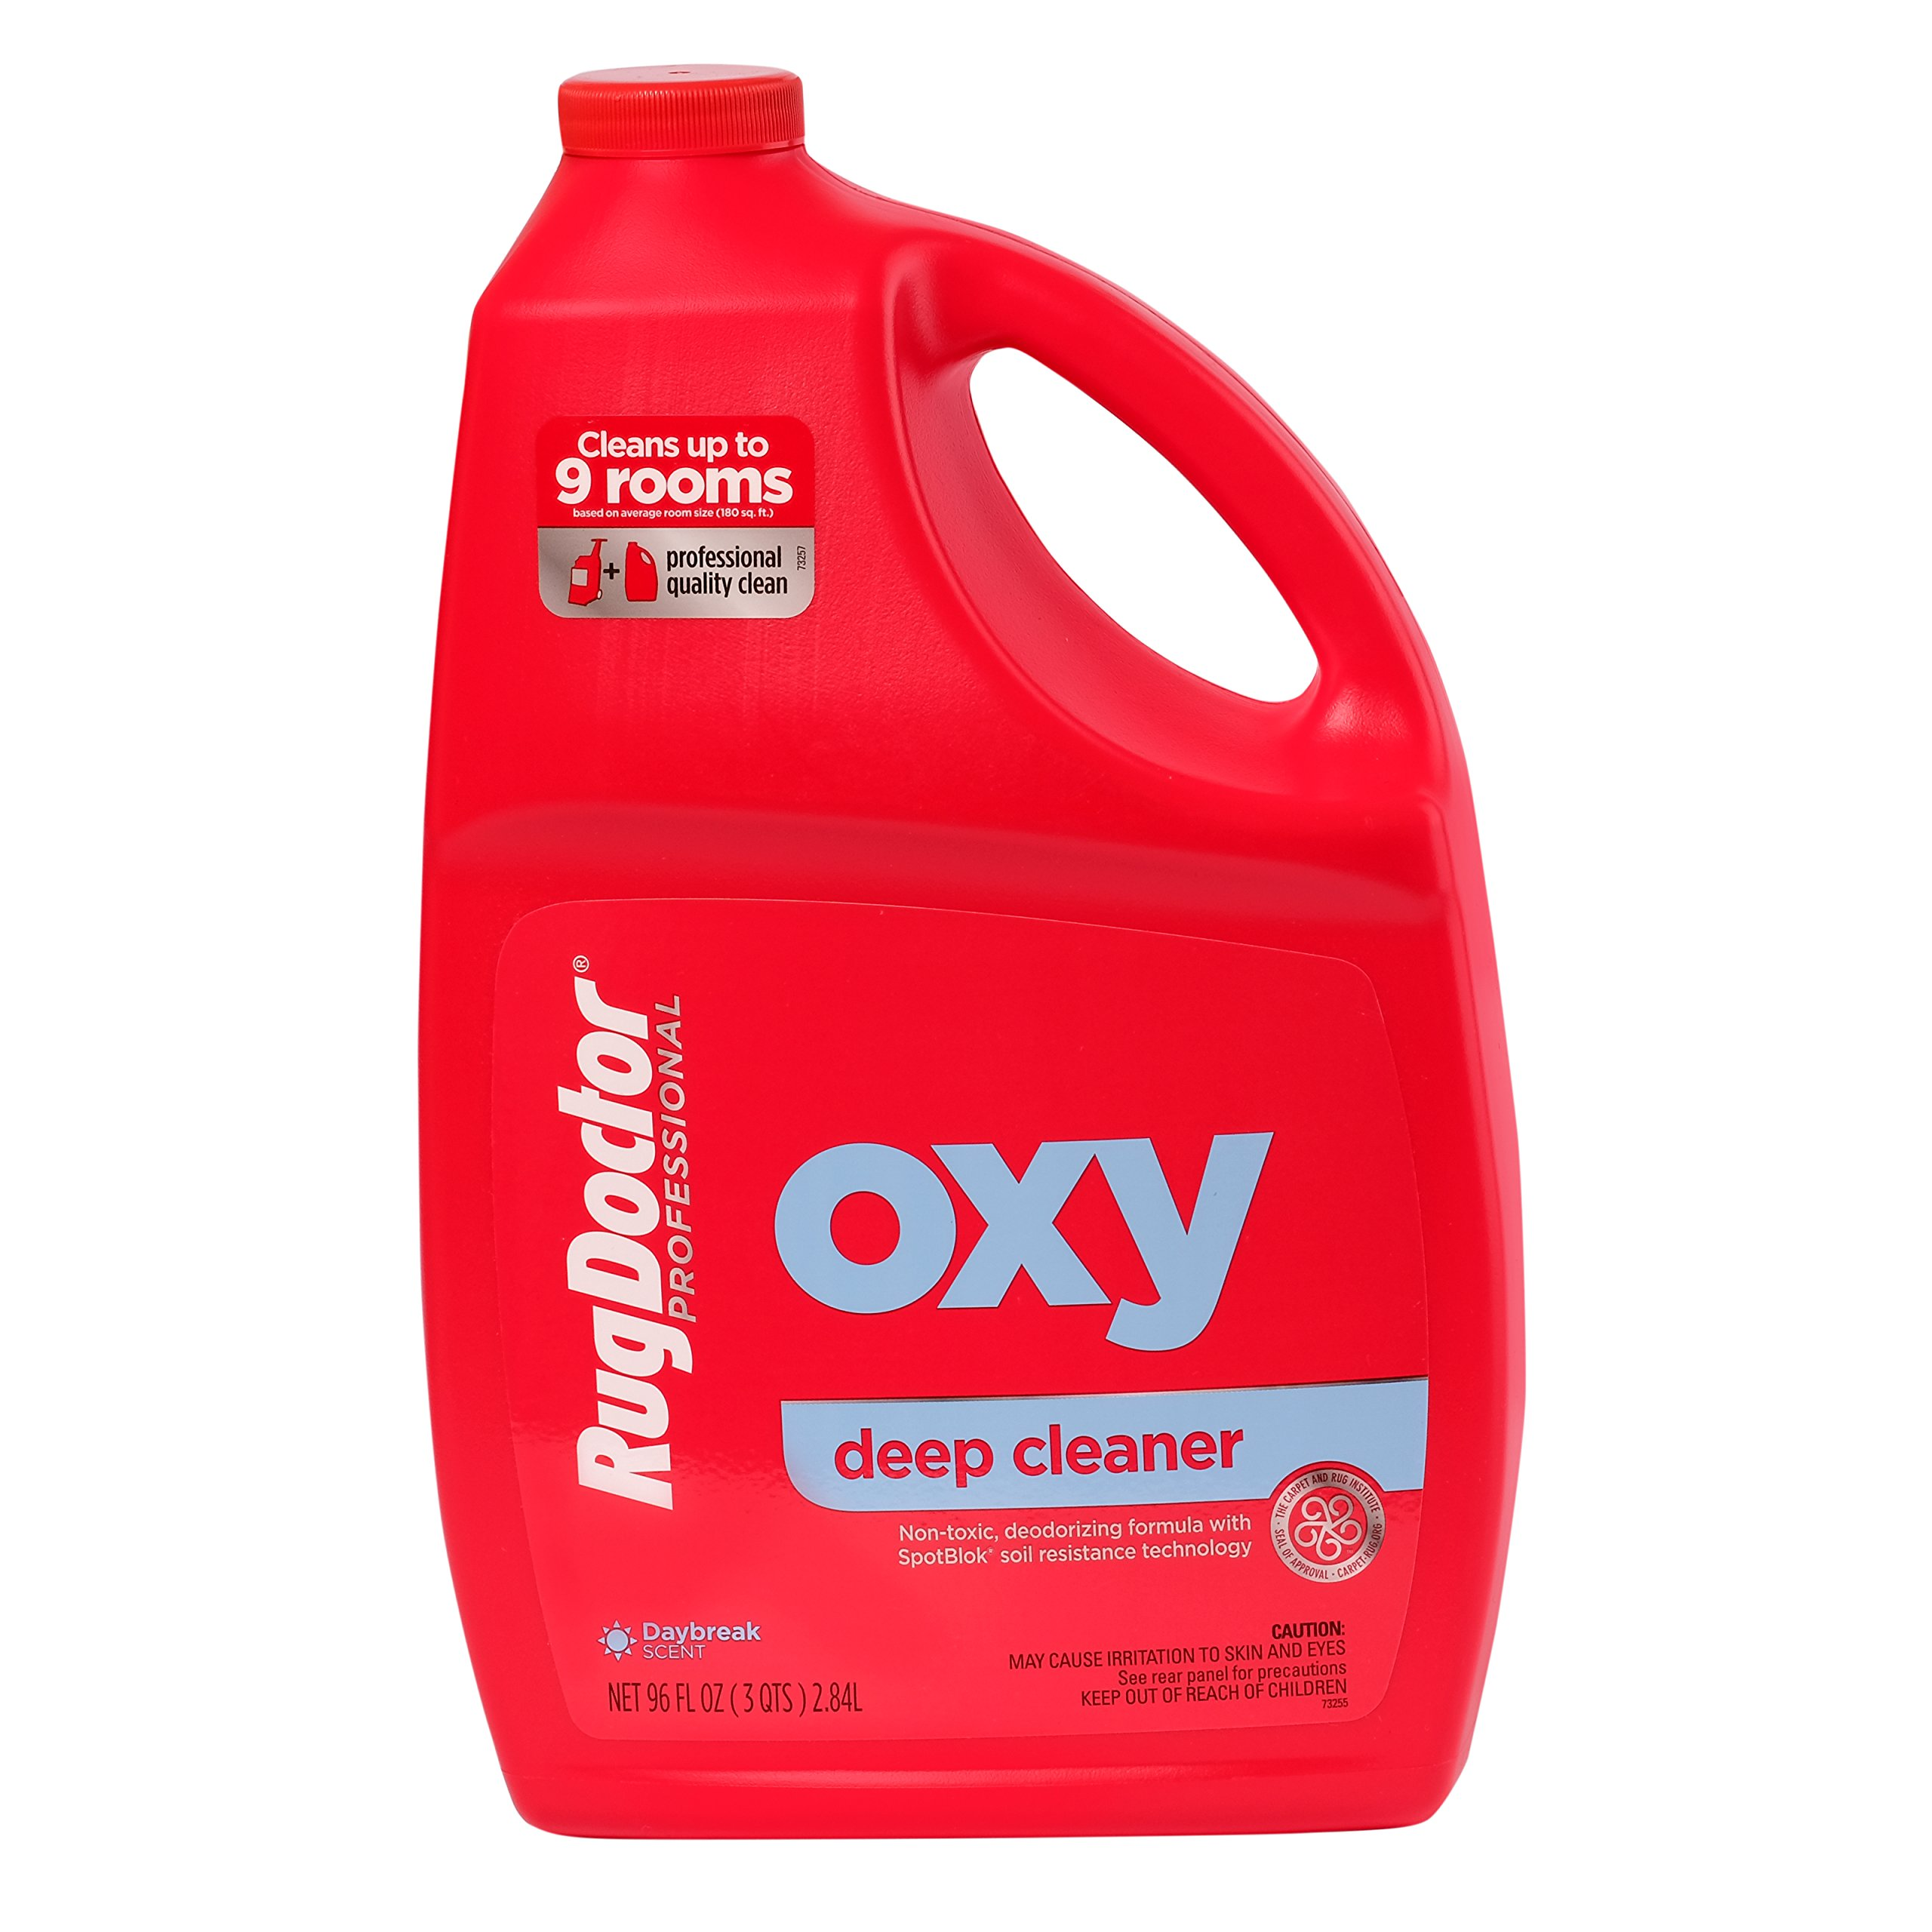 Rug Doctor Oxy Deep Cleaner Solution for Rental Cleaners, Non-Toxic Deodorizing Formula with Oxygen Power to Lift Stains and Spots, 96 oz. by Rug Doctor (Image #3)